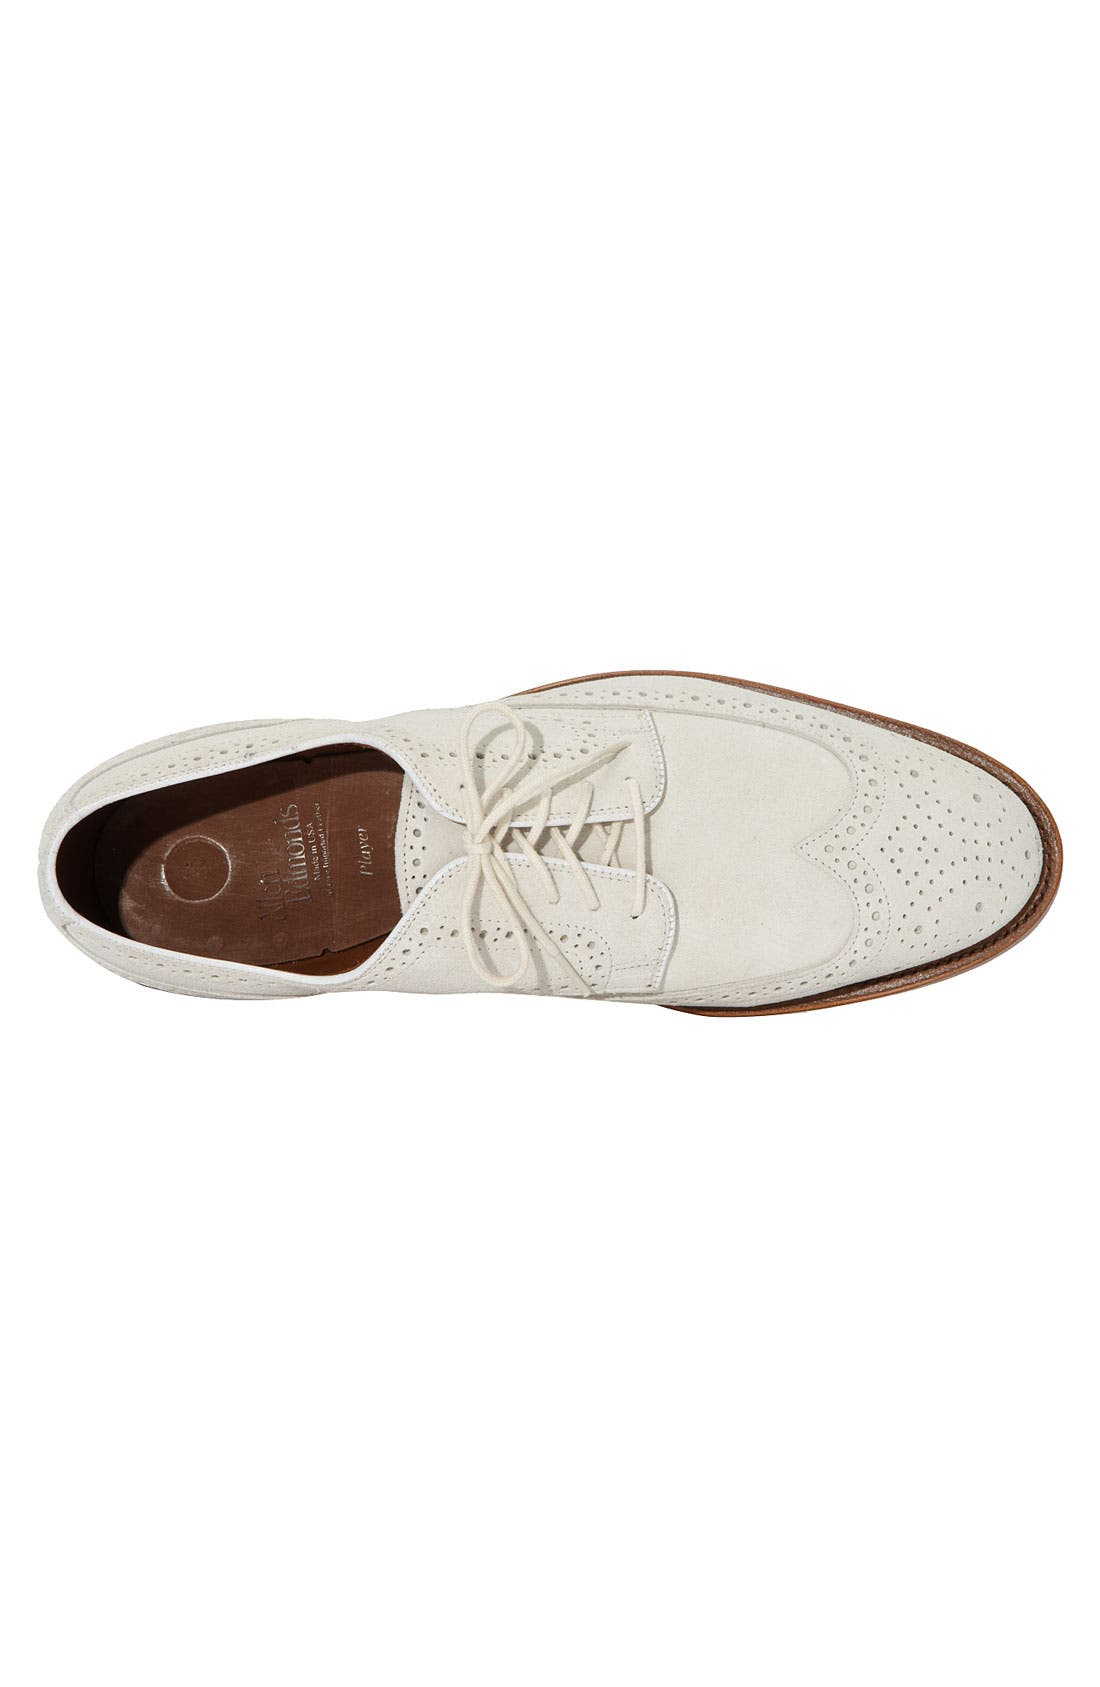 Alternate Image 3  - Allen Edmonds 'Player' Oxford (Online Only)